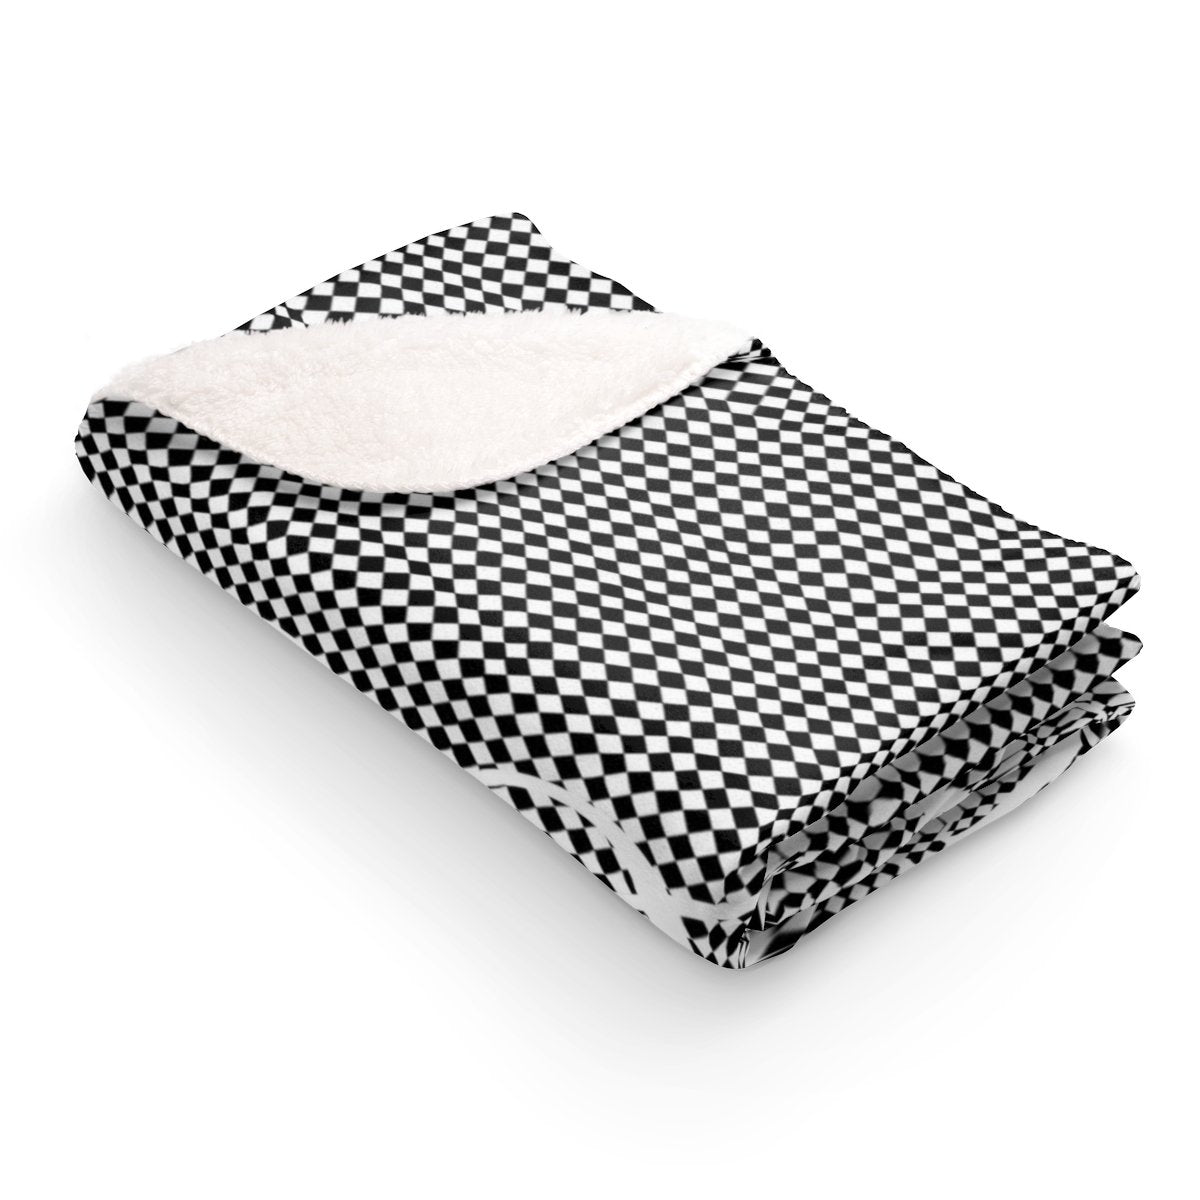 Classic Checkered Christmas Sherpa Fleece Blanket-Home Decor-Maison d'Elite-50x60-Très Elite